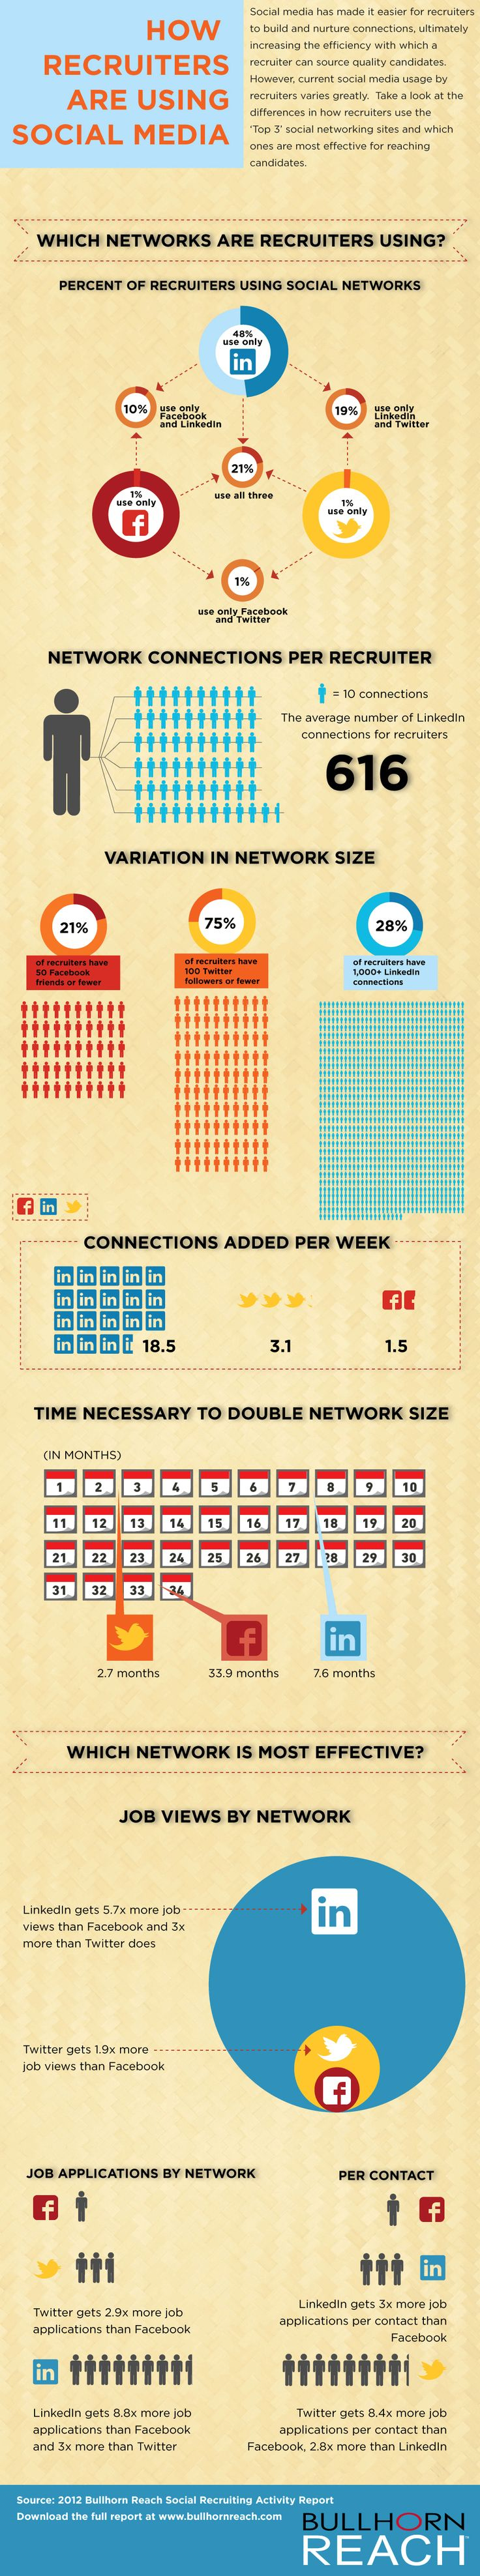 How Recruiters are Using Social Media